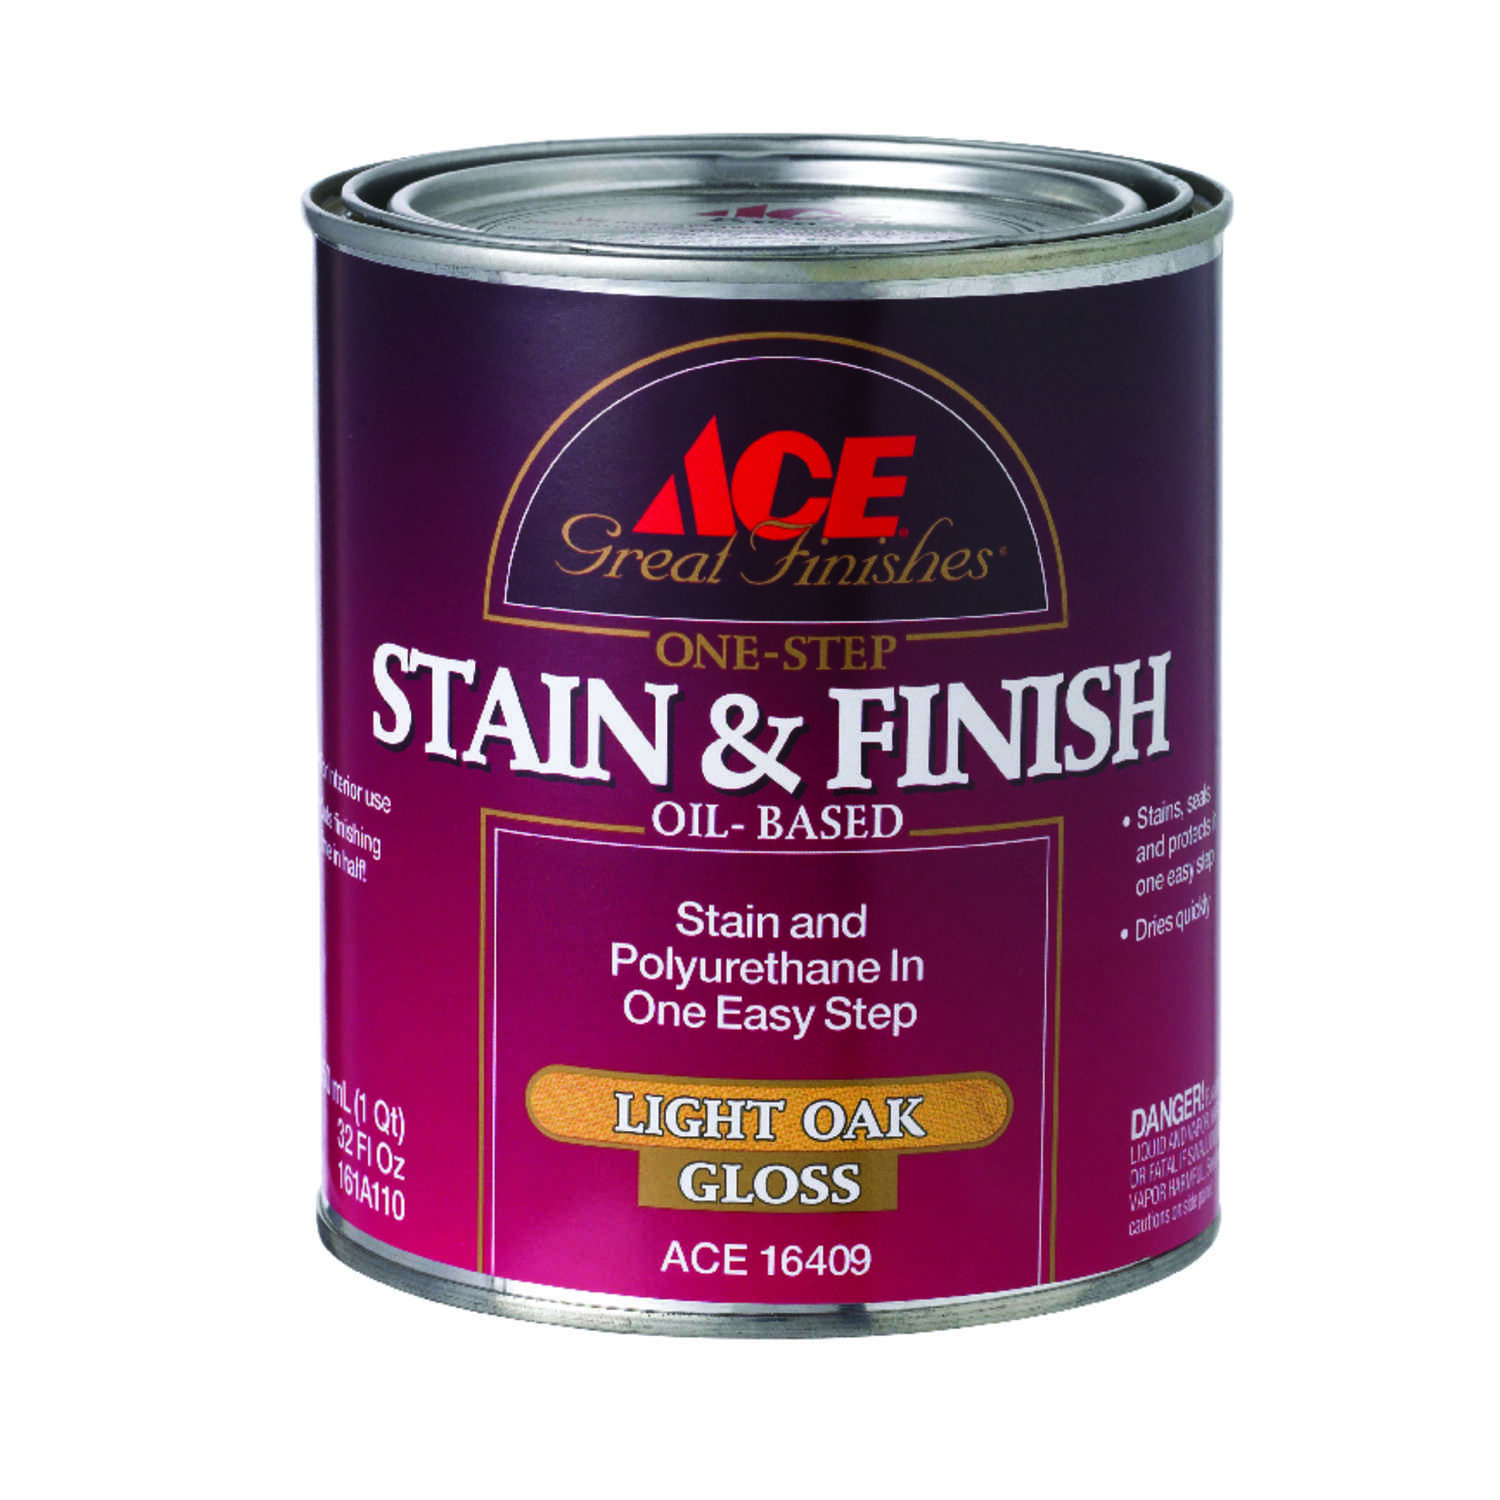 Ace  Great Finishes  Semi-Solid  Gloss  Light Oak  Oil-Based  Oil  Wood Stain and Sealer  1 qt.